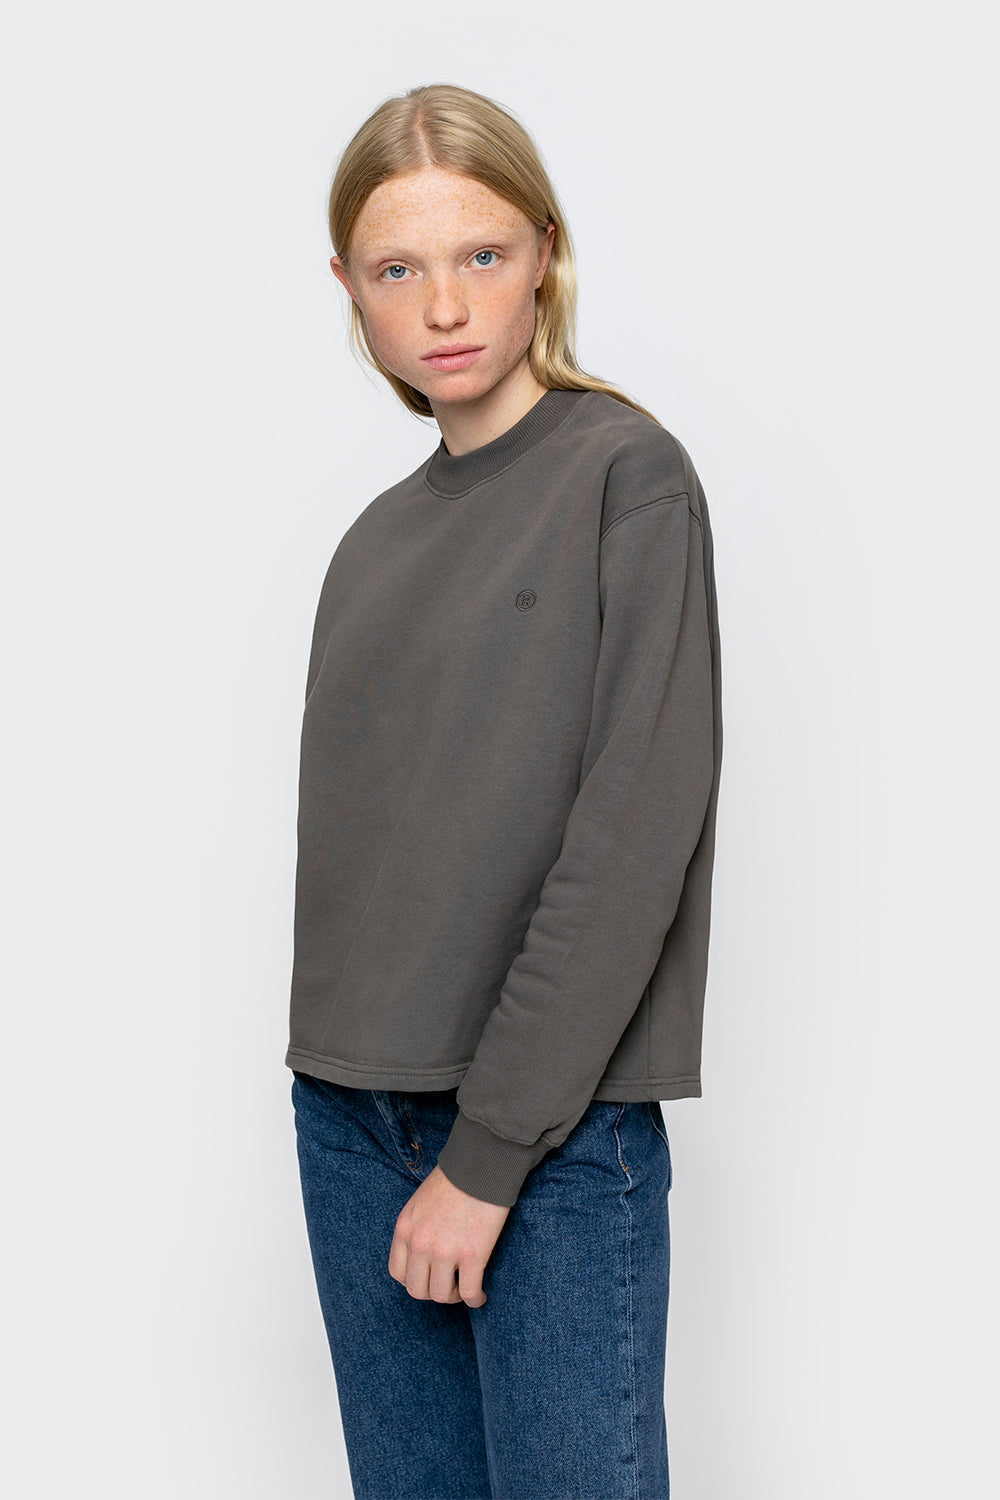 'Rights' Cropped Sweatshirt Charcoal